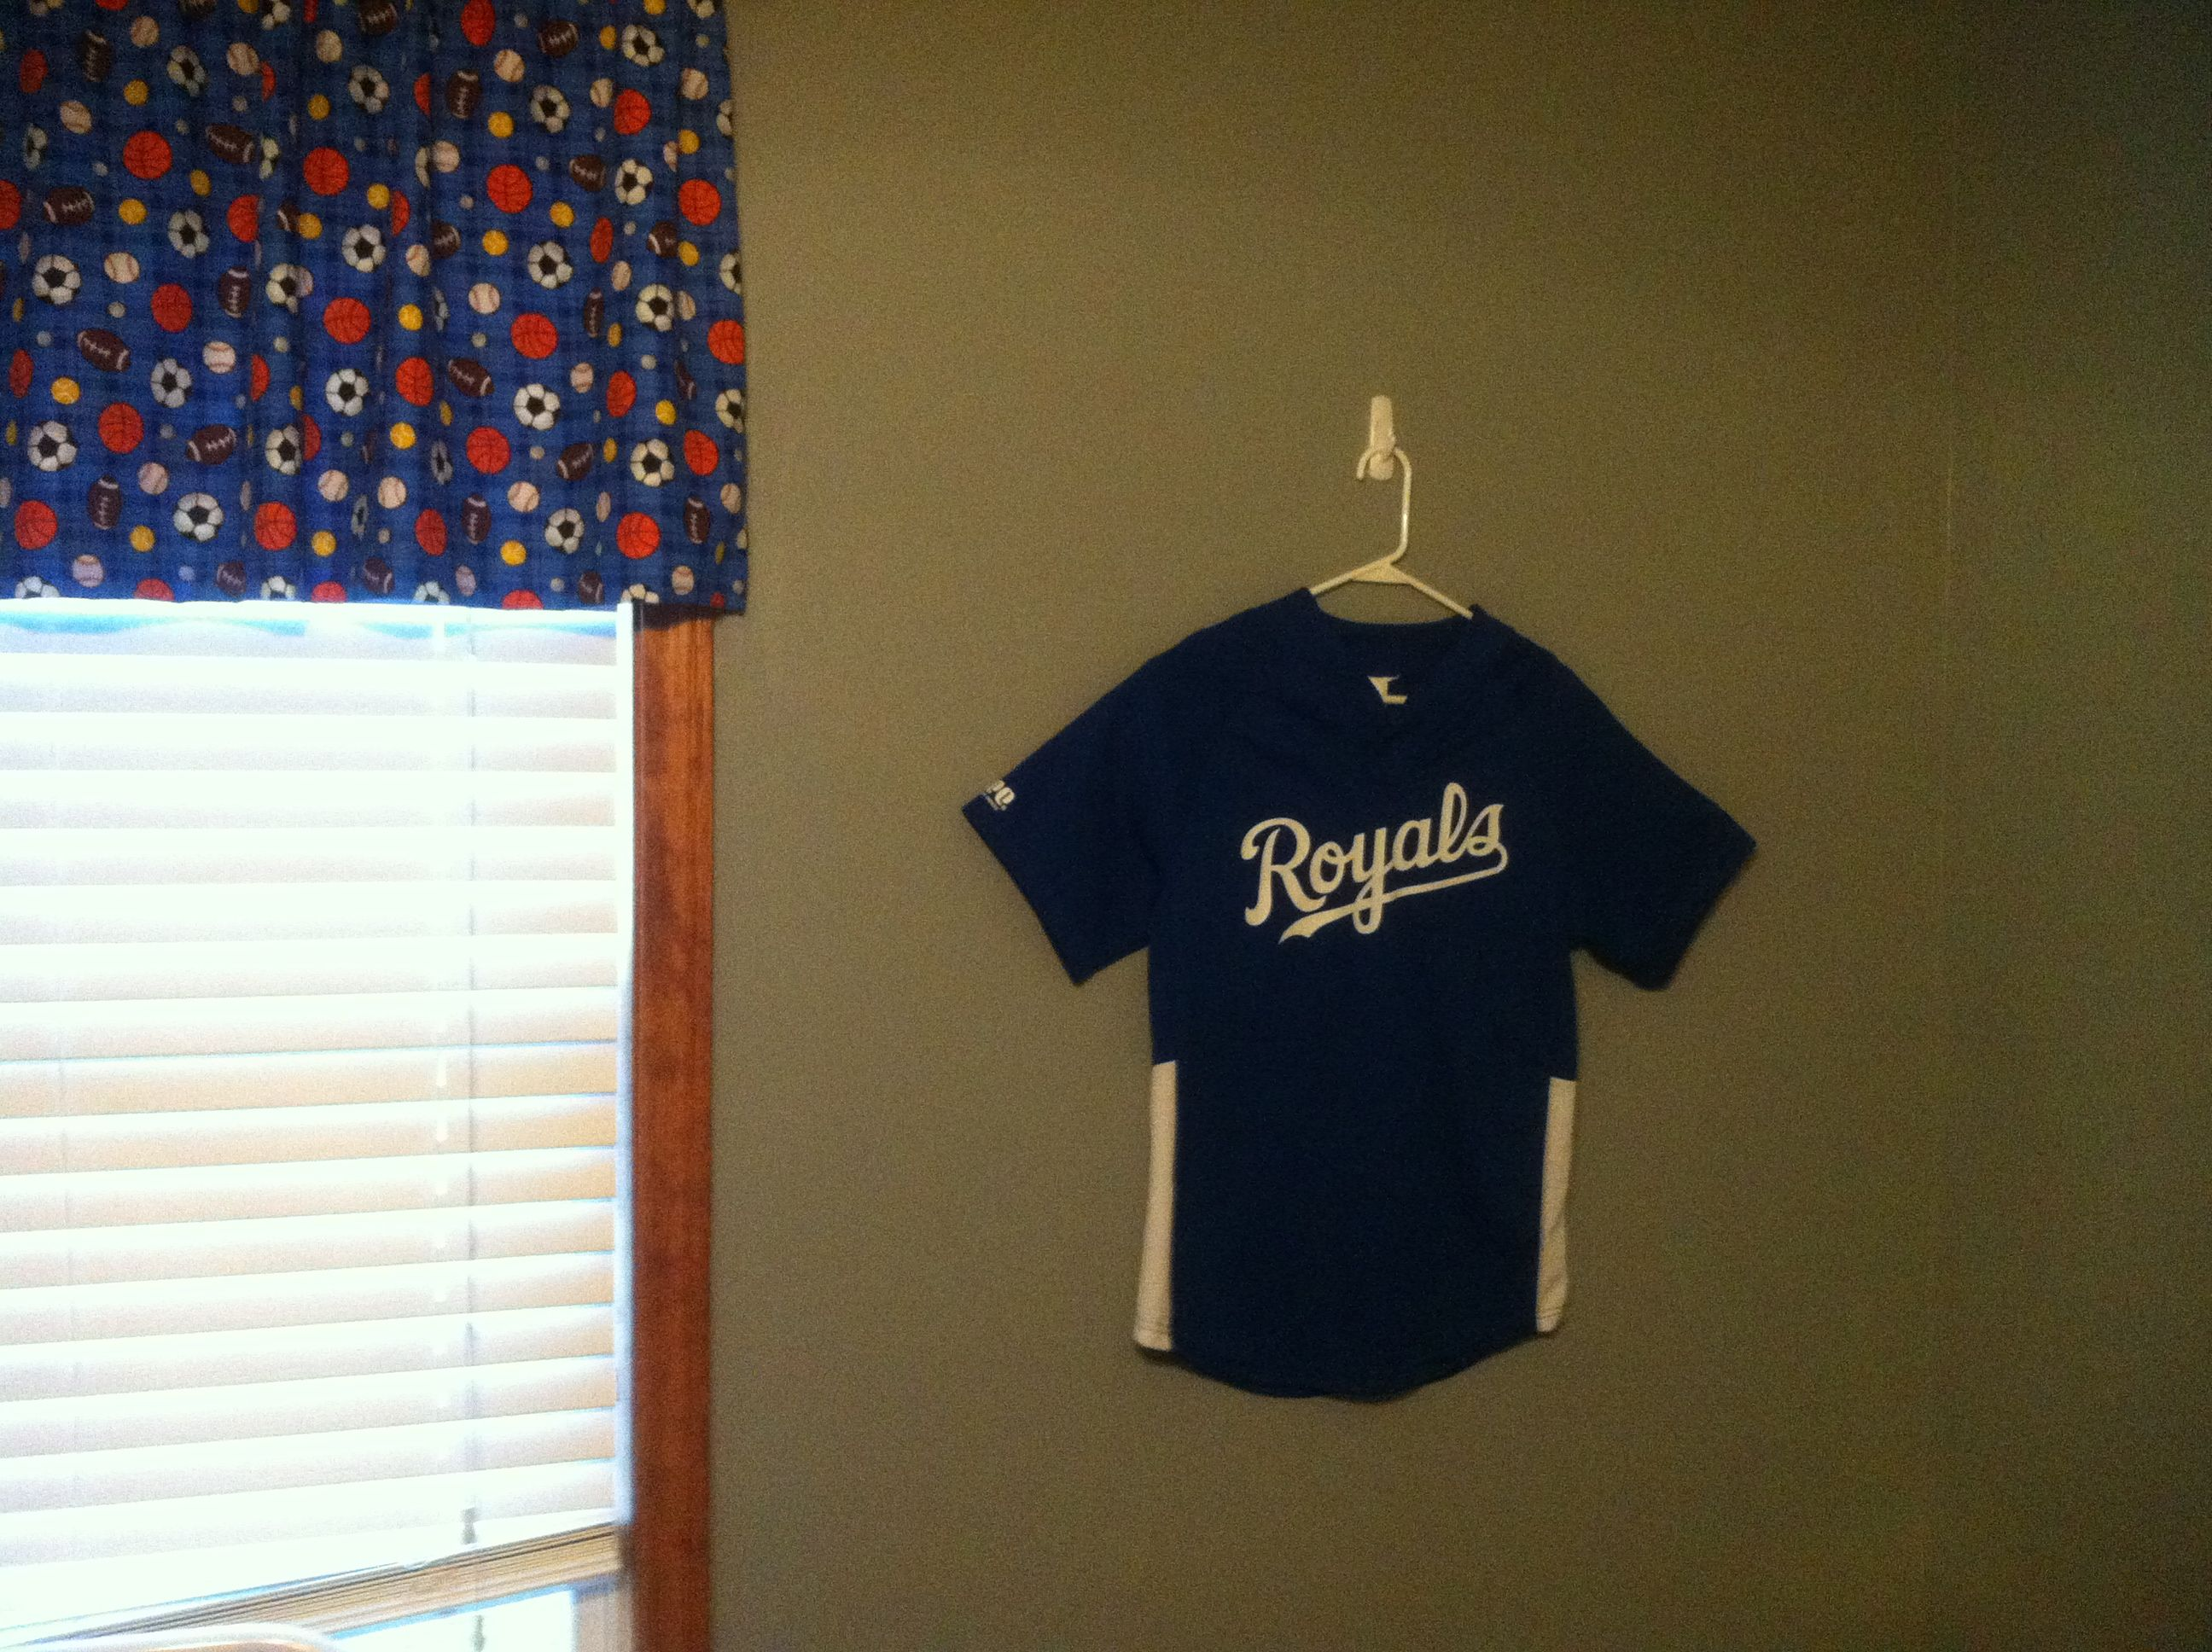 hang jerseys on the wall for free decorations boys room valance curtains decor curtains. Black Bedroom Furniture Sets. Home Design Ideas